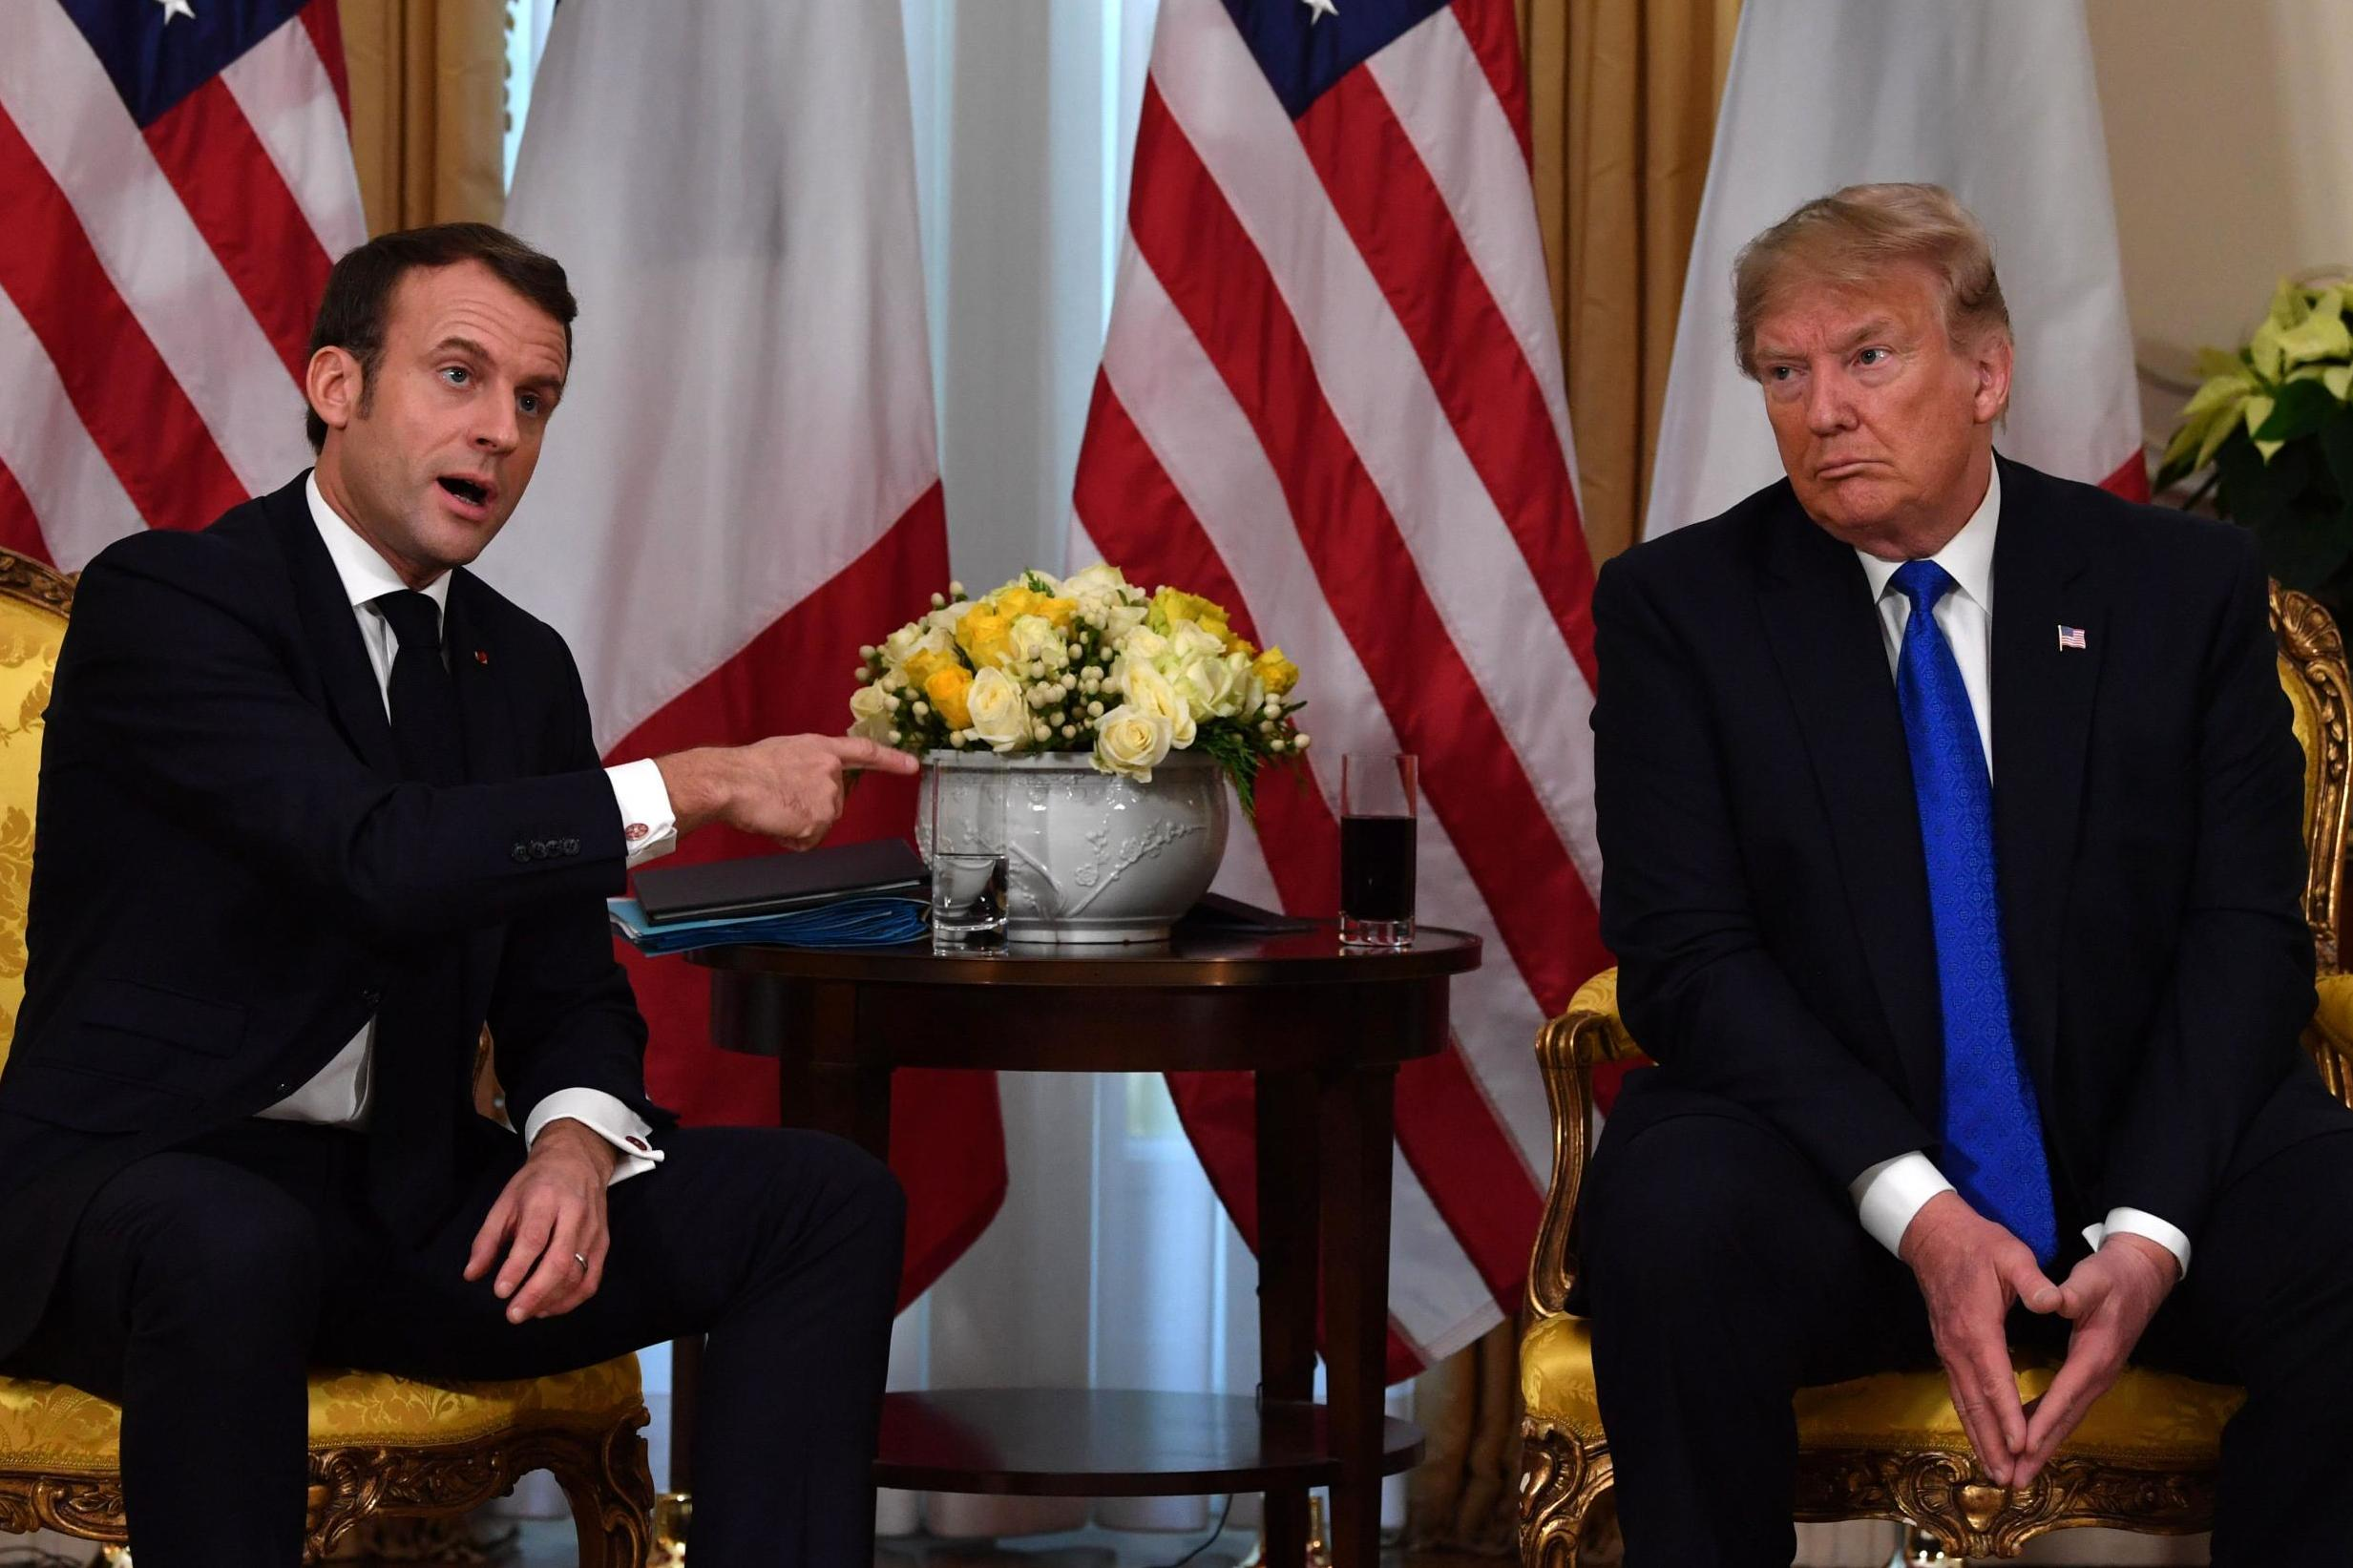 In one moment of unscripted exasperation at NATO, Macron showed Trump what the whole world thinks of him now